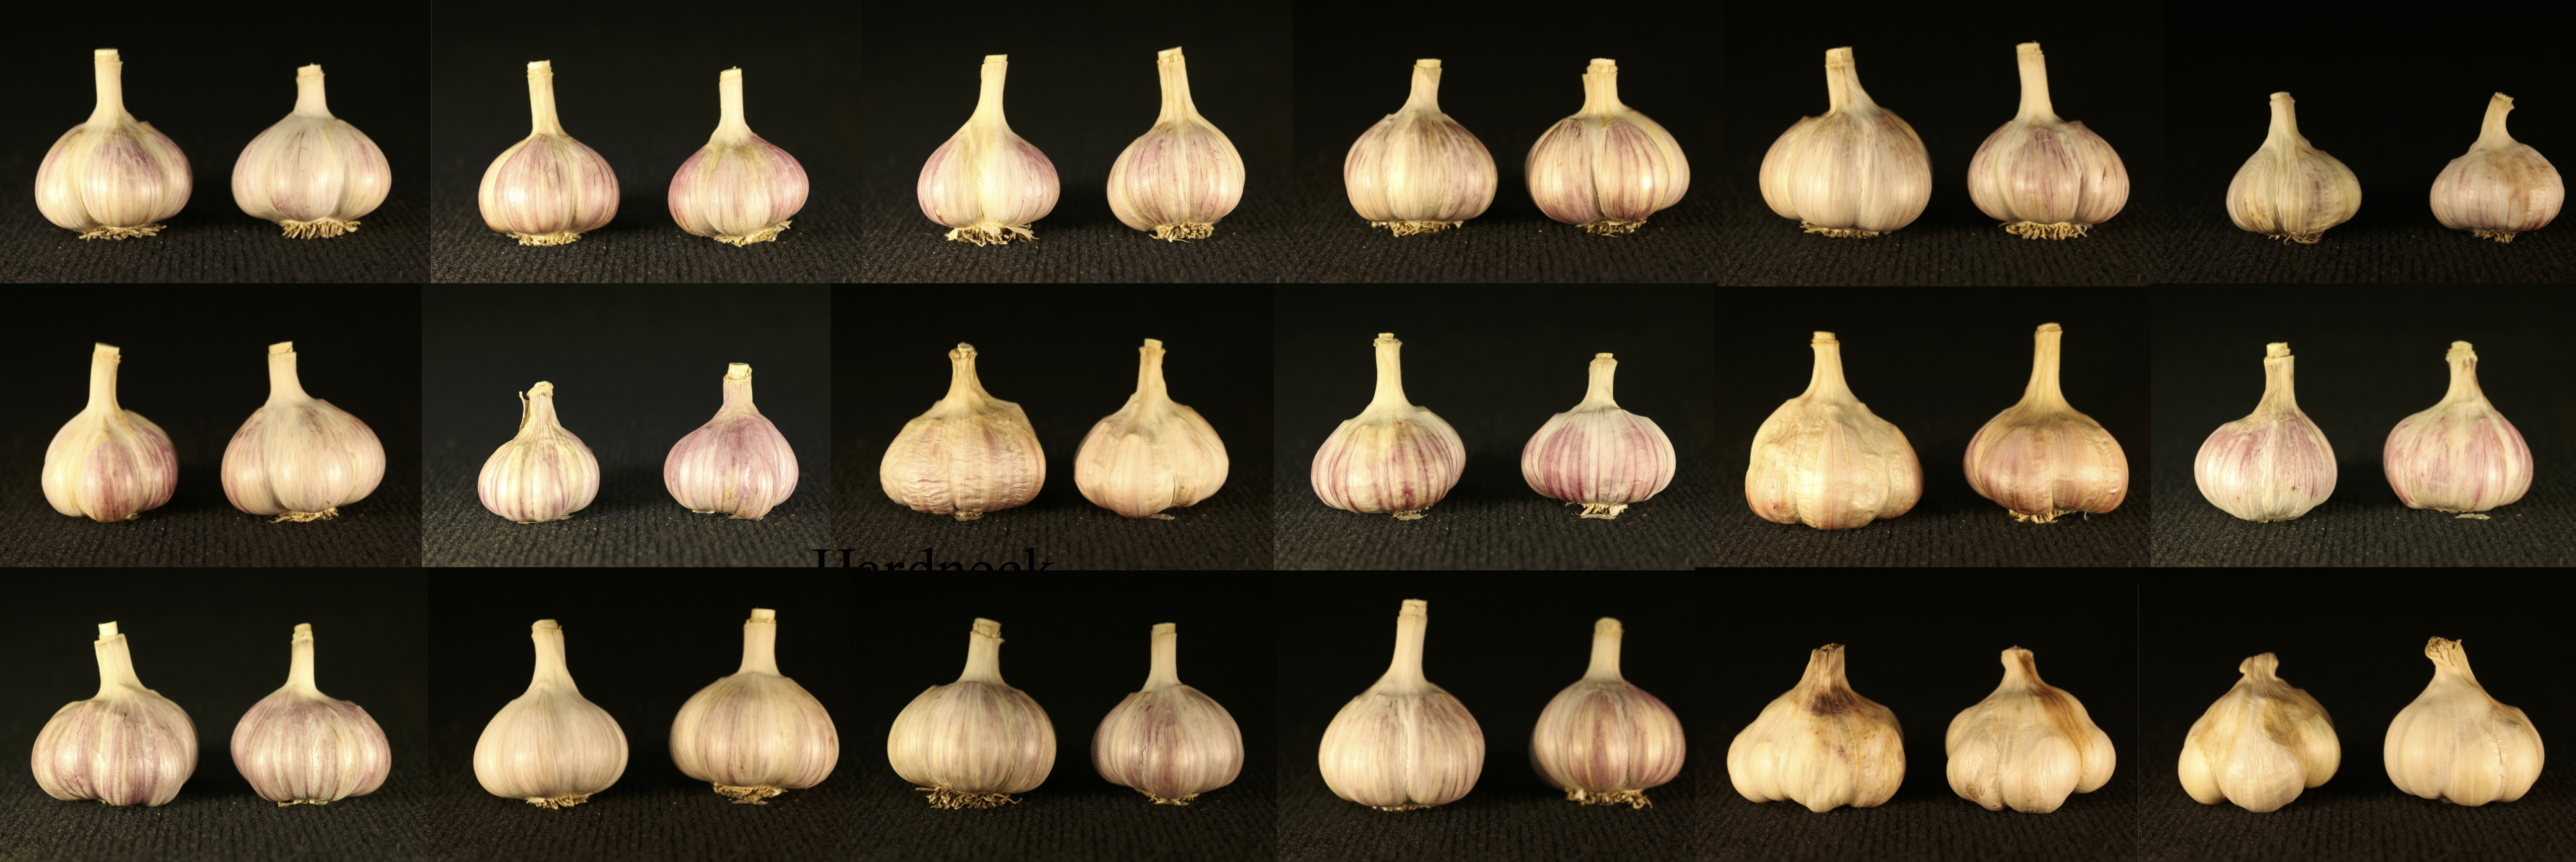 Garlic bulbs from cultivar trial